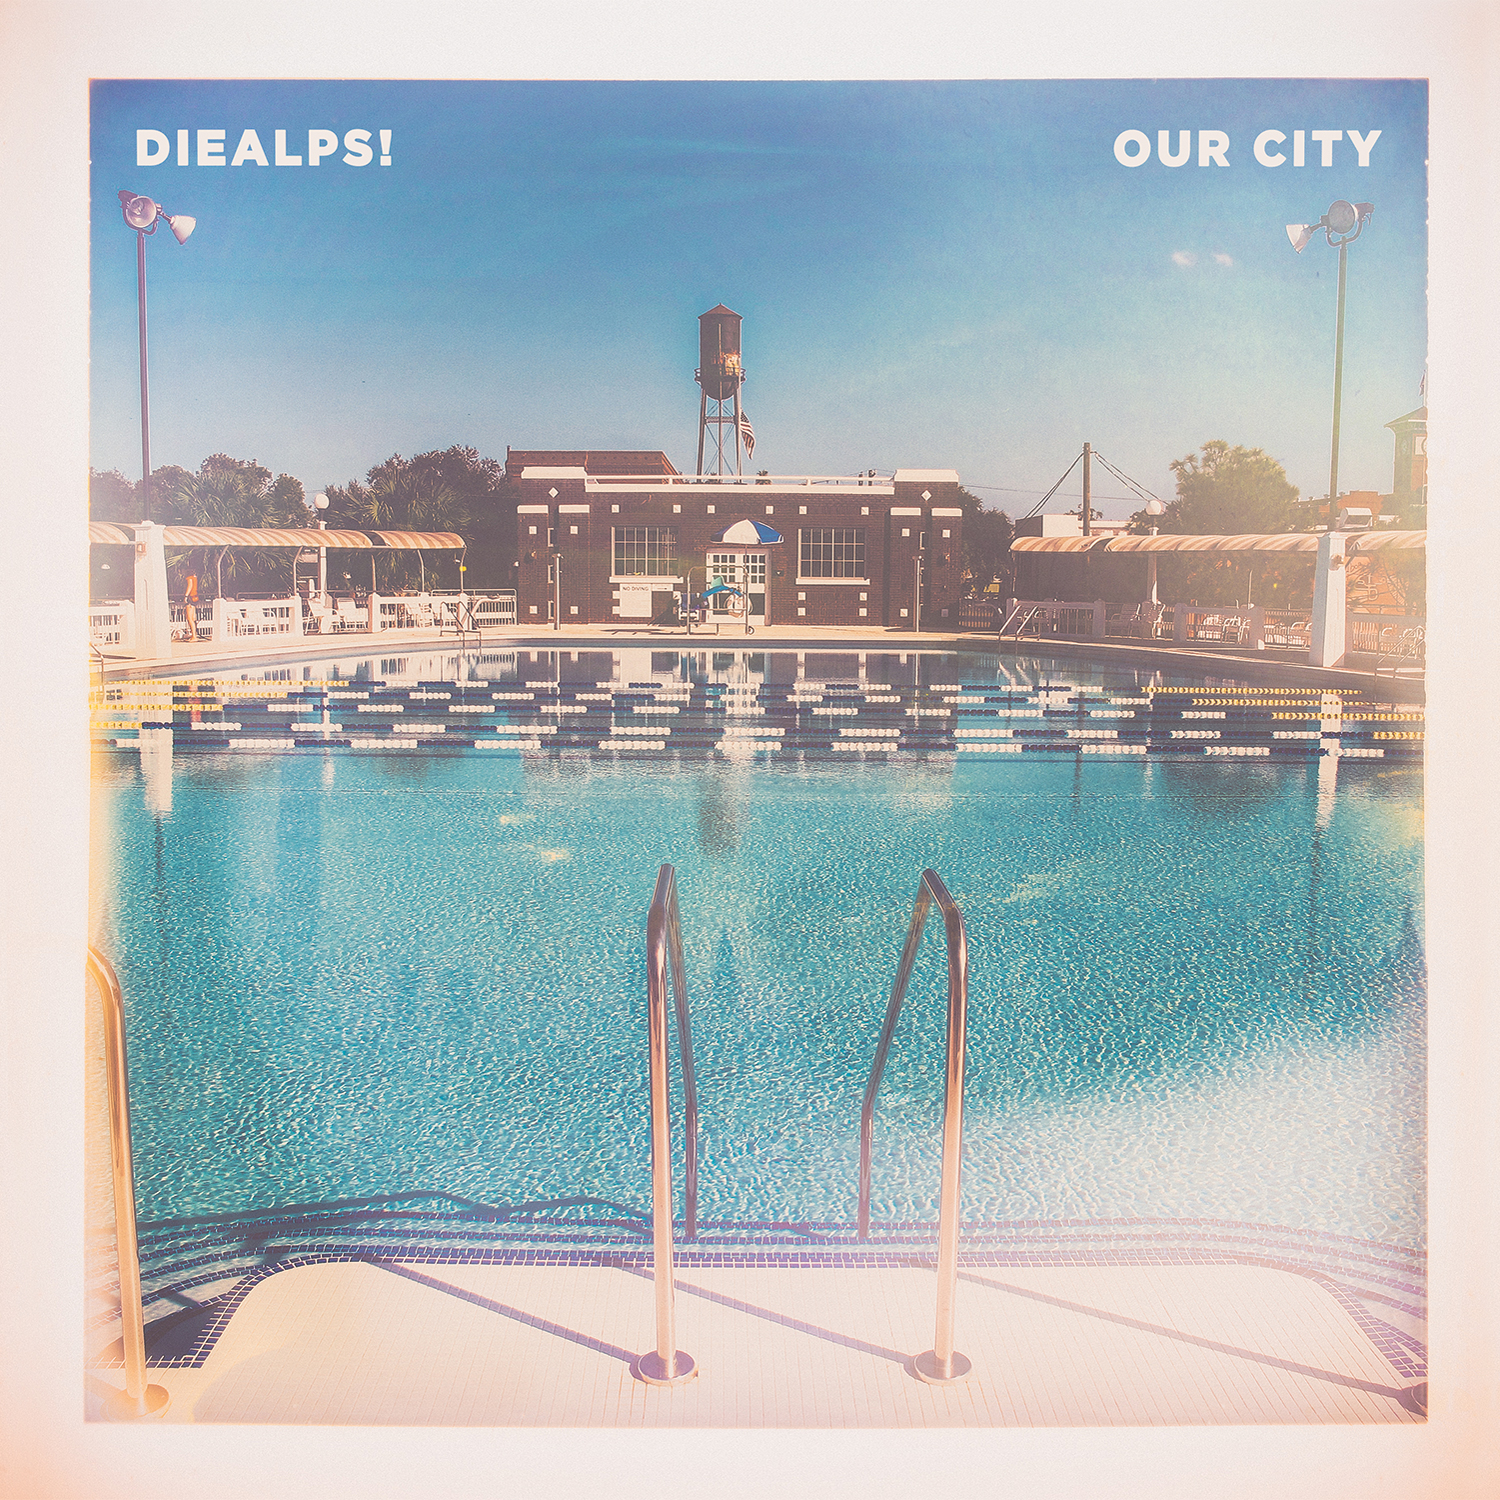 die alps! - our city